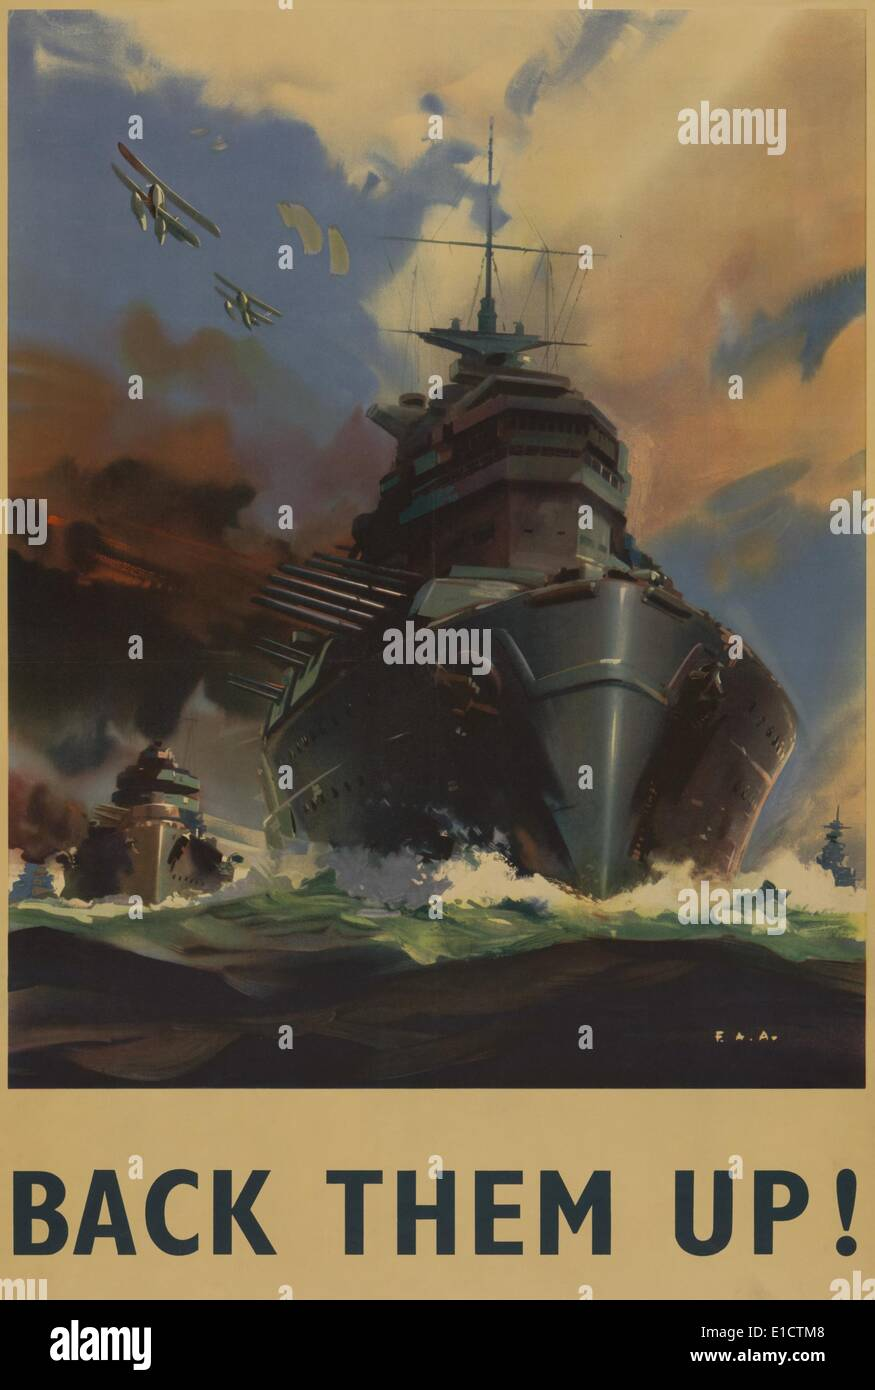 British World War 2 poster. 'Back Them Up!' reads a poster depicting warships and seaplanes. Ca. 1939-45. (BSLOC_2013_14_212) Stock Photo